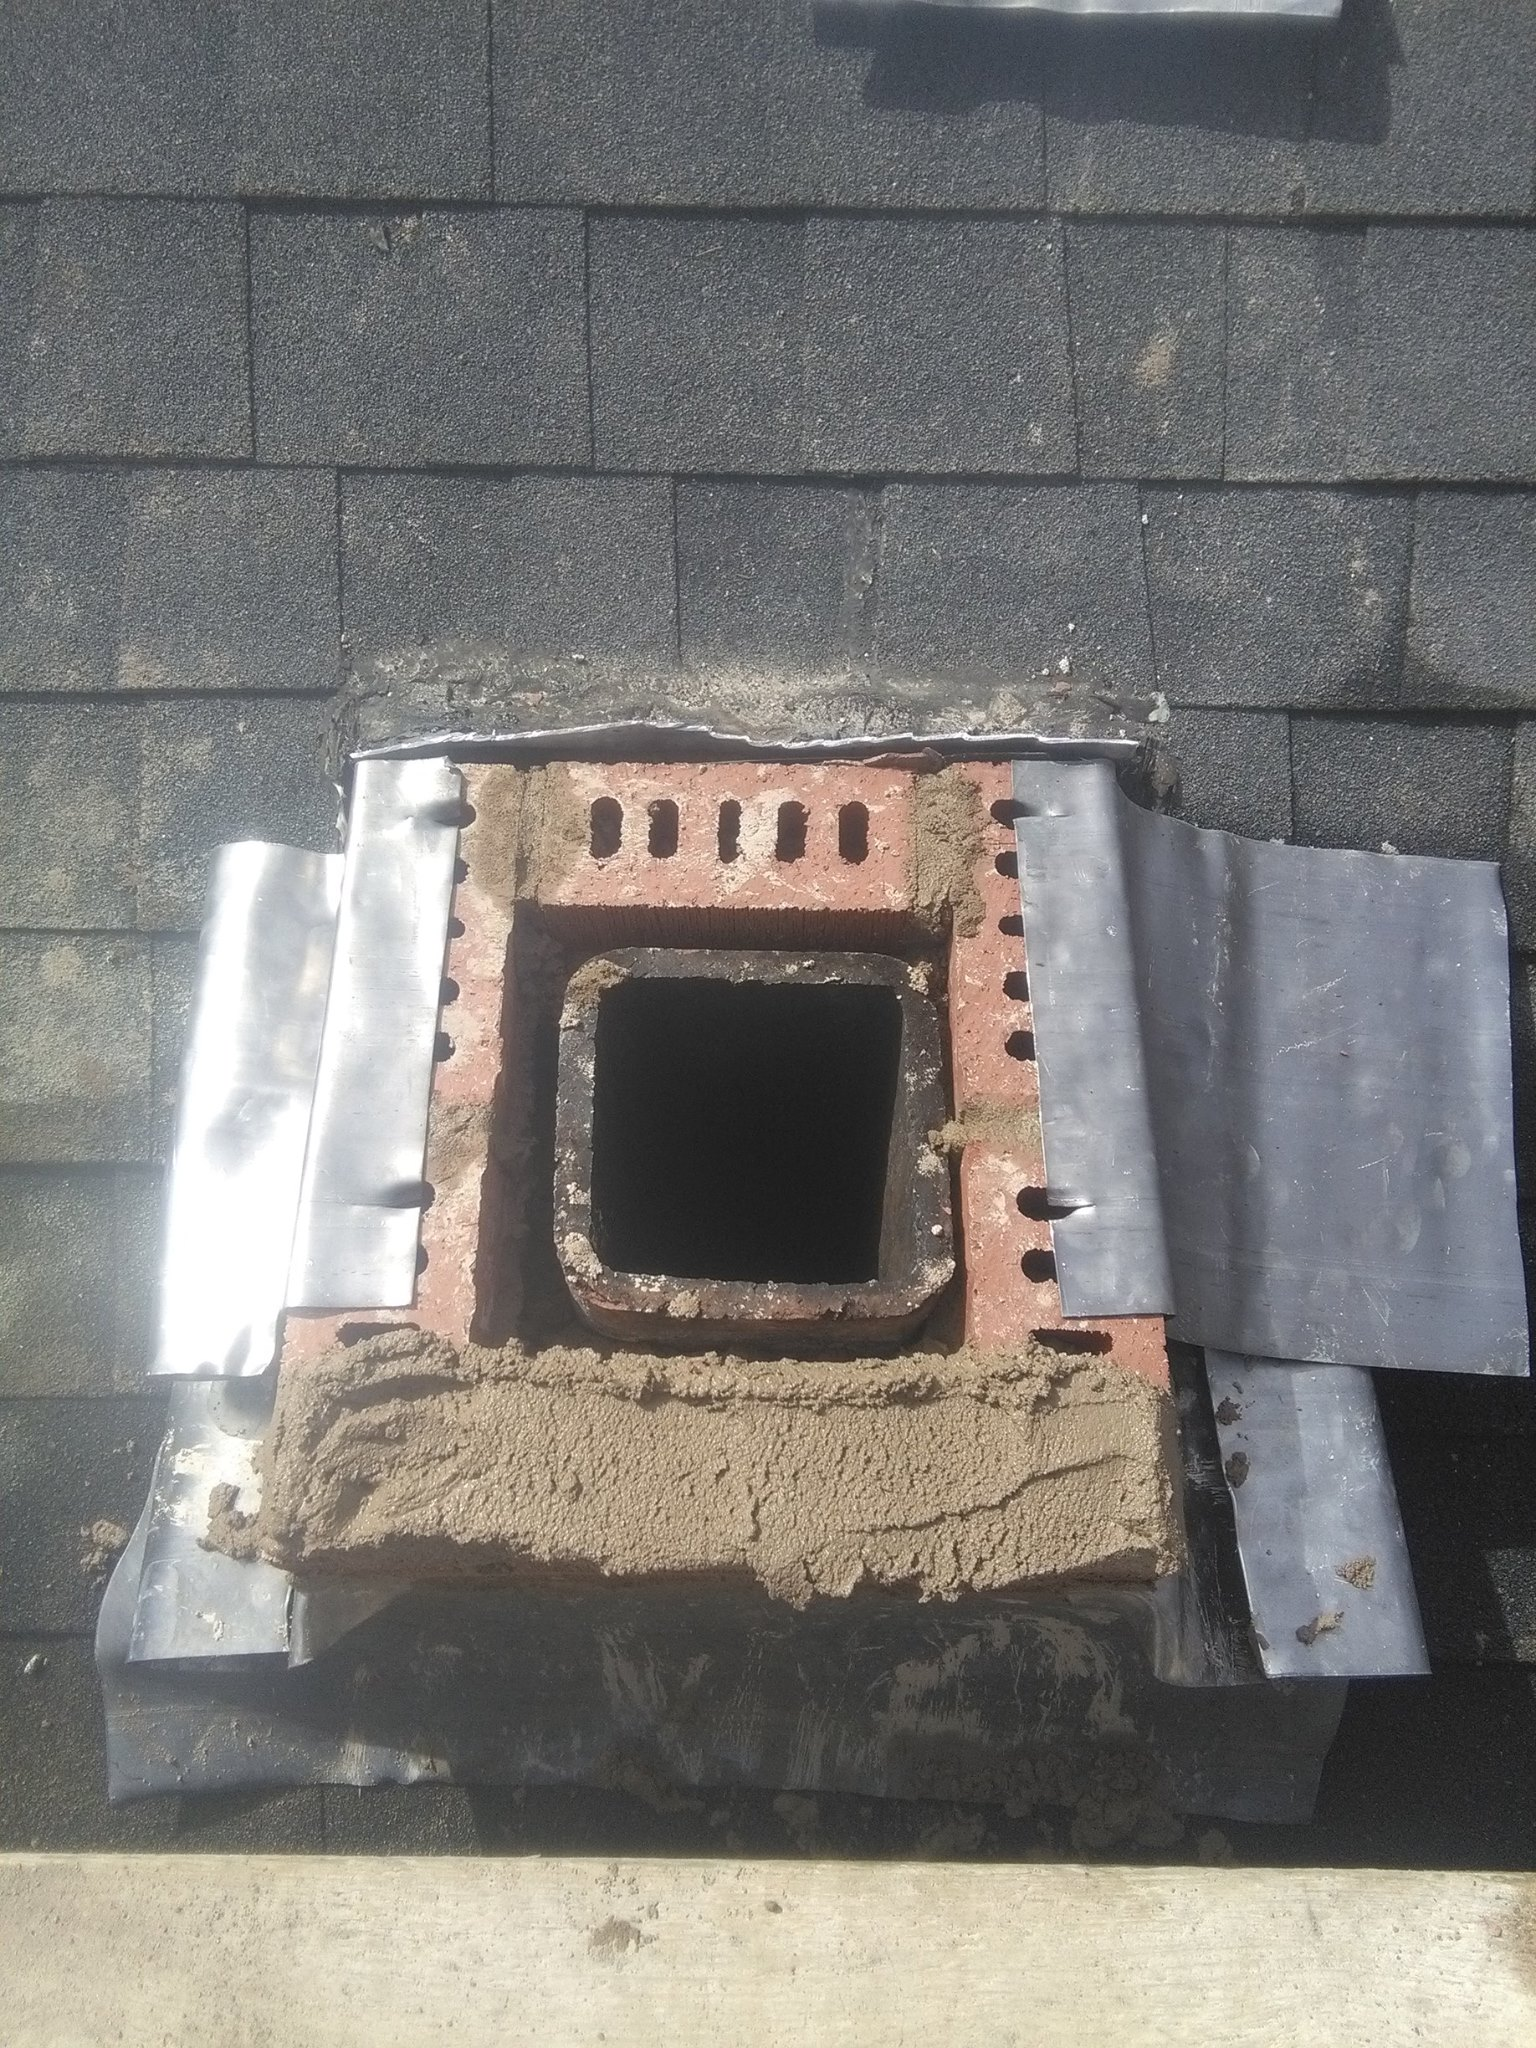 image of chimney construction services completed in Fall River, NS by Pro Chimney Services based in Halifax, NS servicing all of the Halifax-Dartmouth Regional Municipality, Bedford, Sackville, Mount Uniacke, Windsor, Hantsport , Wolfville, Kentville, Chester, Mahone Bay, Lunenburg, Bridgewater, Liverpool, Fall River, Wellington, Enfield, Elmsdale, Brookfield, Truro, Musquodoboit Harbour & surrounding areas.